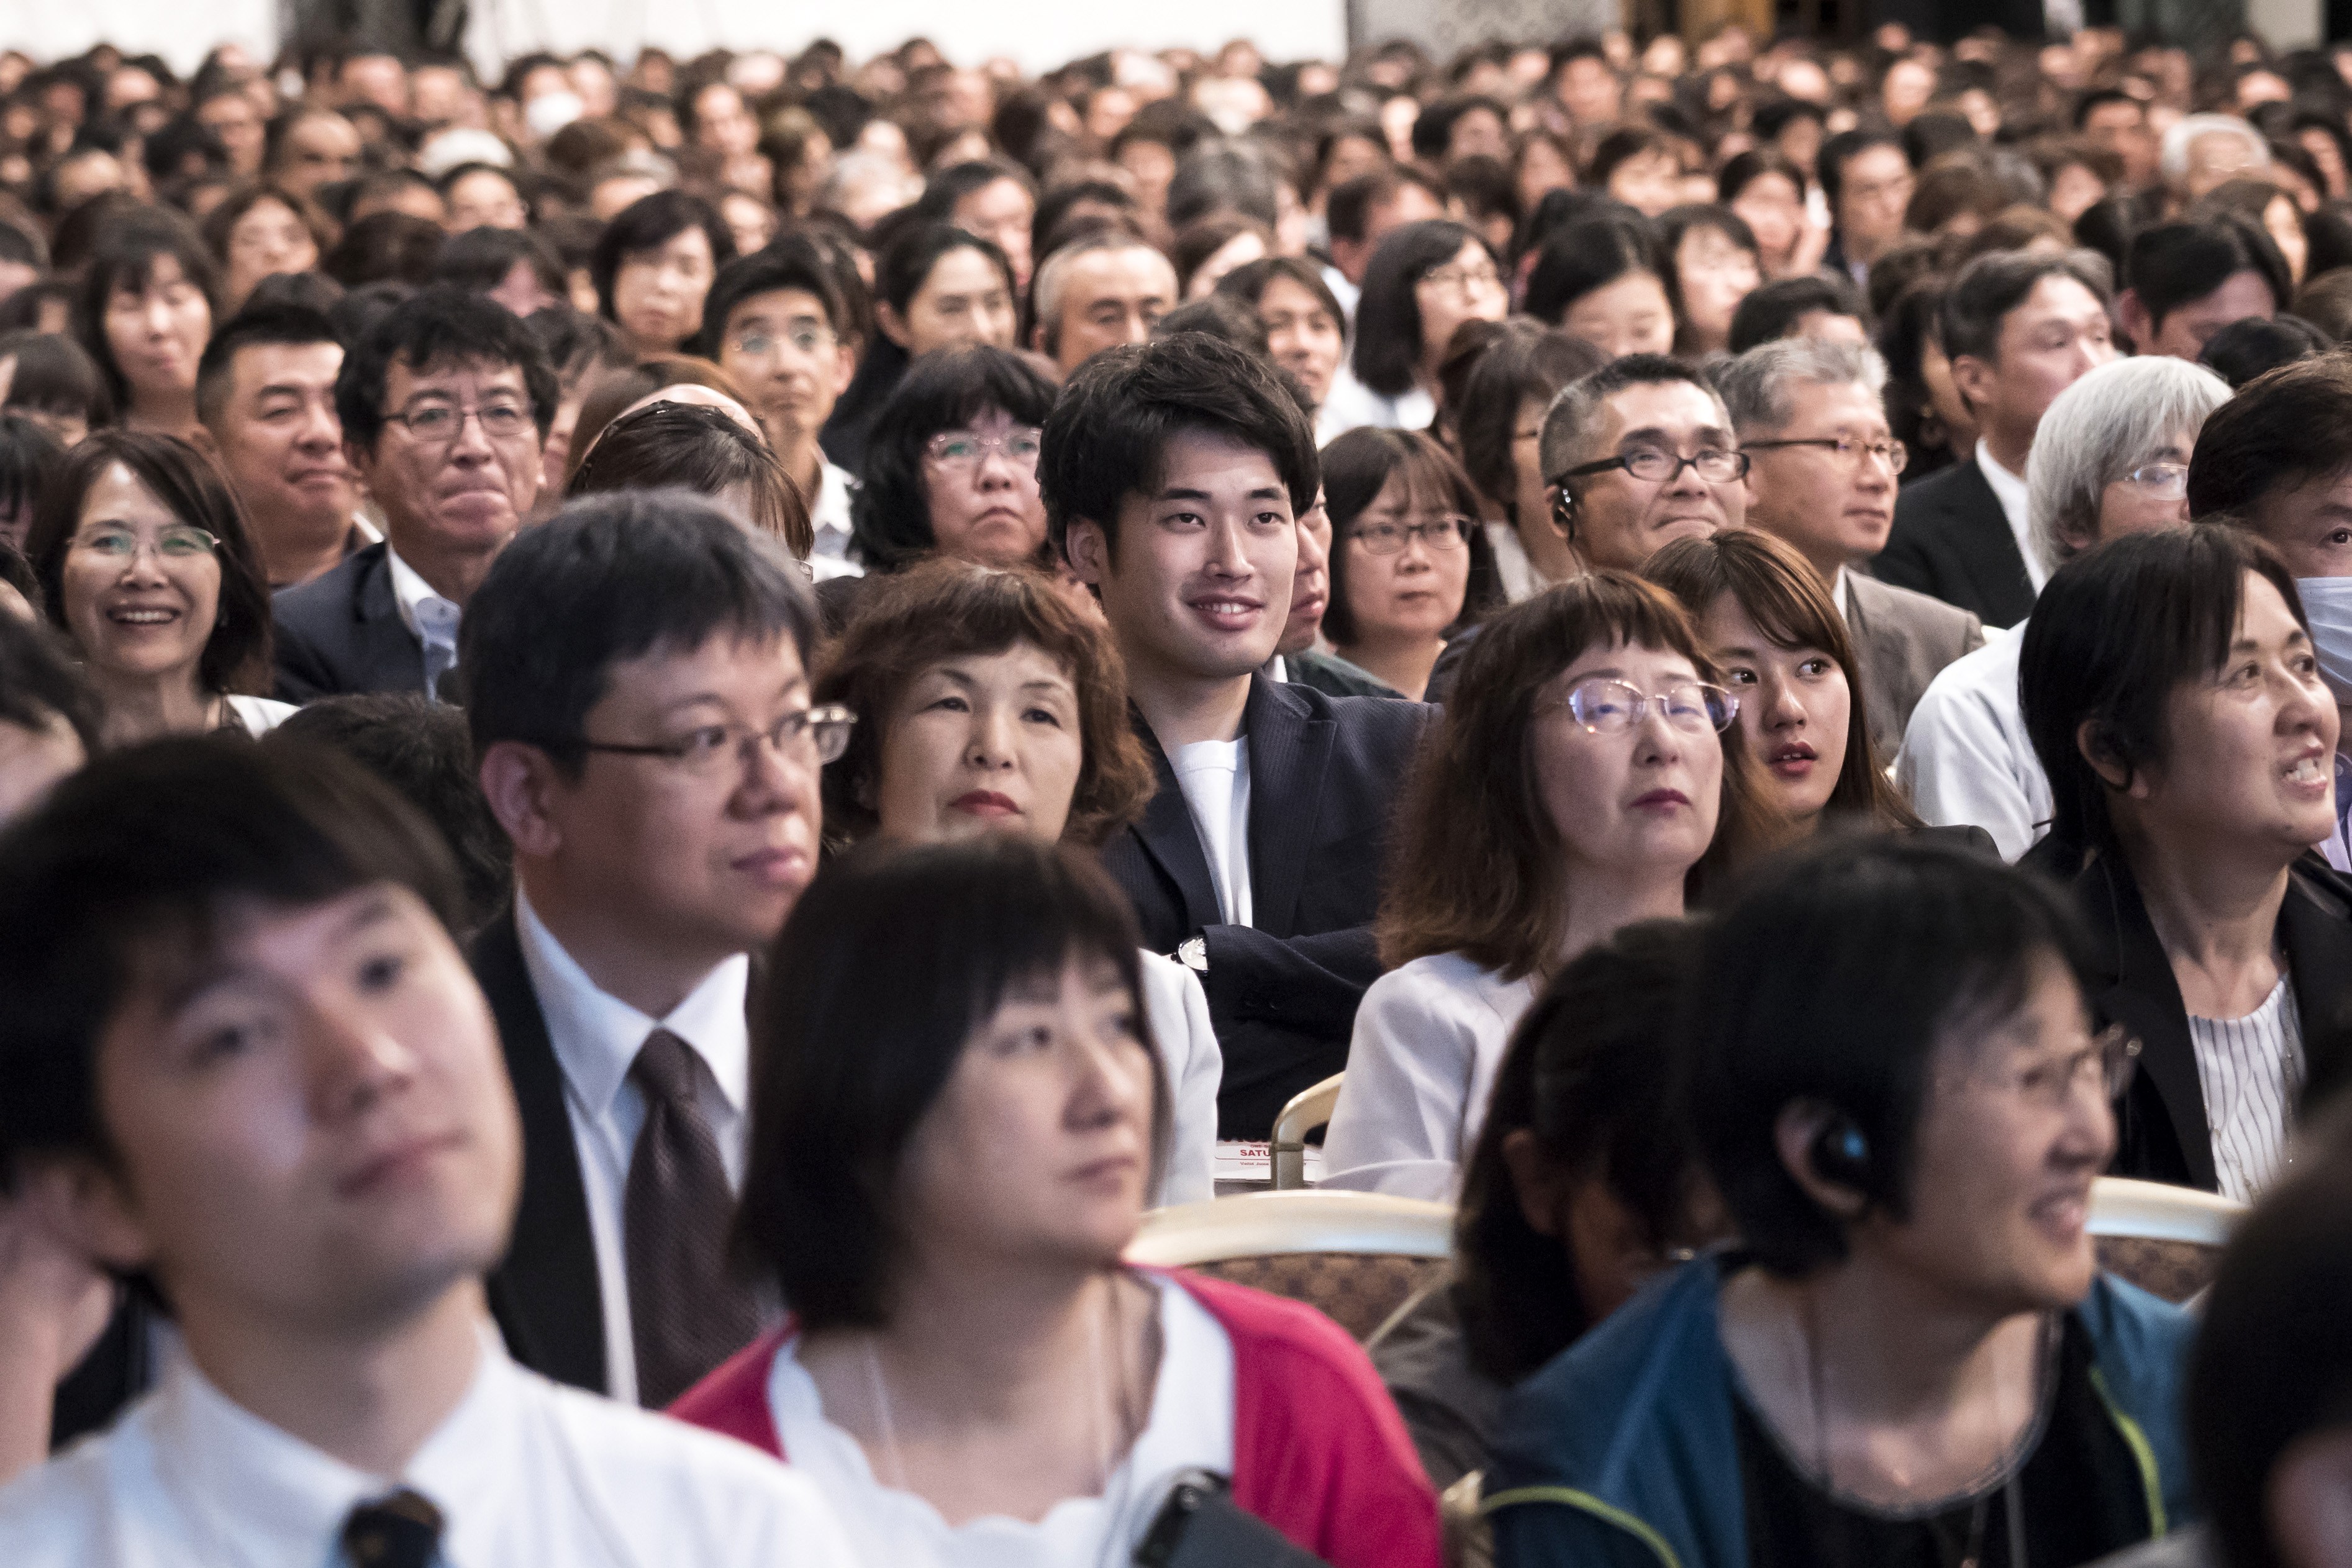 Attendees listen to a speech during the G20 Interfaith Forum in Chiba, Japan, on Saturday, June 8, 2019.